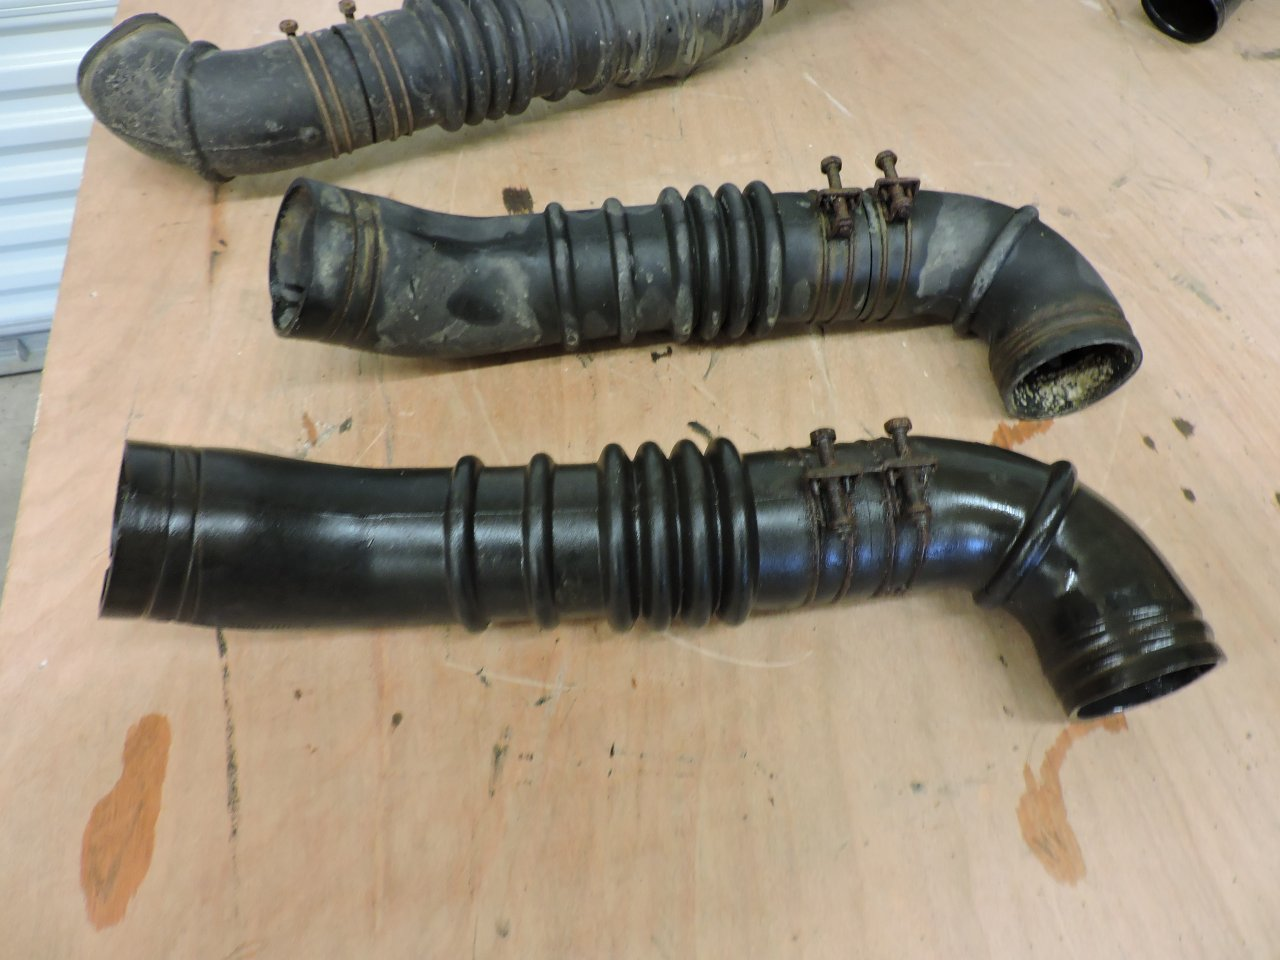 View attachment 1112397 ... & For Sale - BJ40 BJ42 airbox and rubber intake hoses | IH8MUD Forum